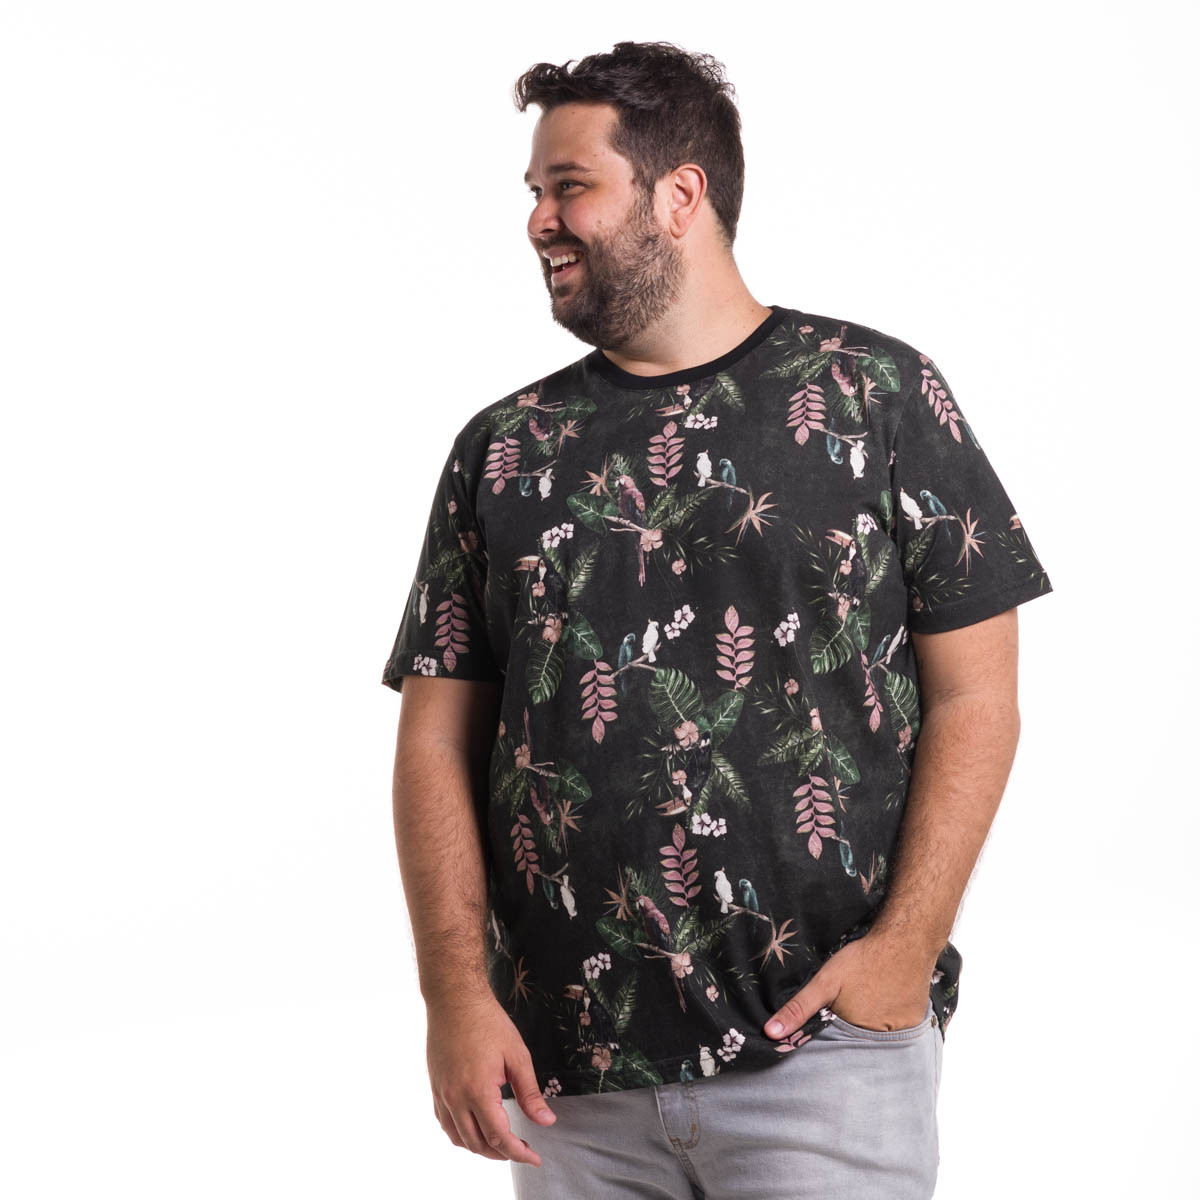 Camiseta Plus Size Masculina Floresta Tropical